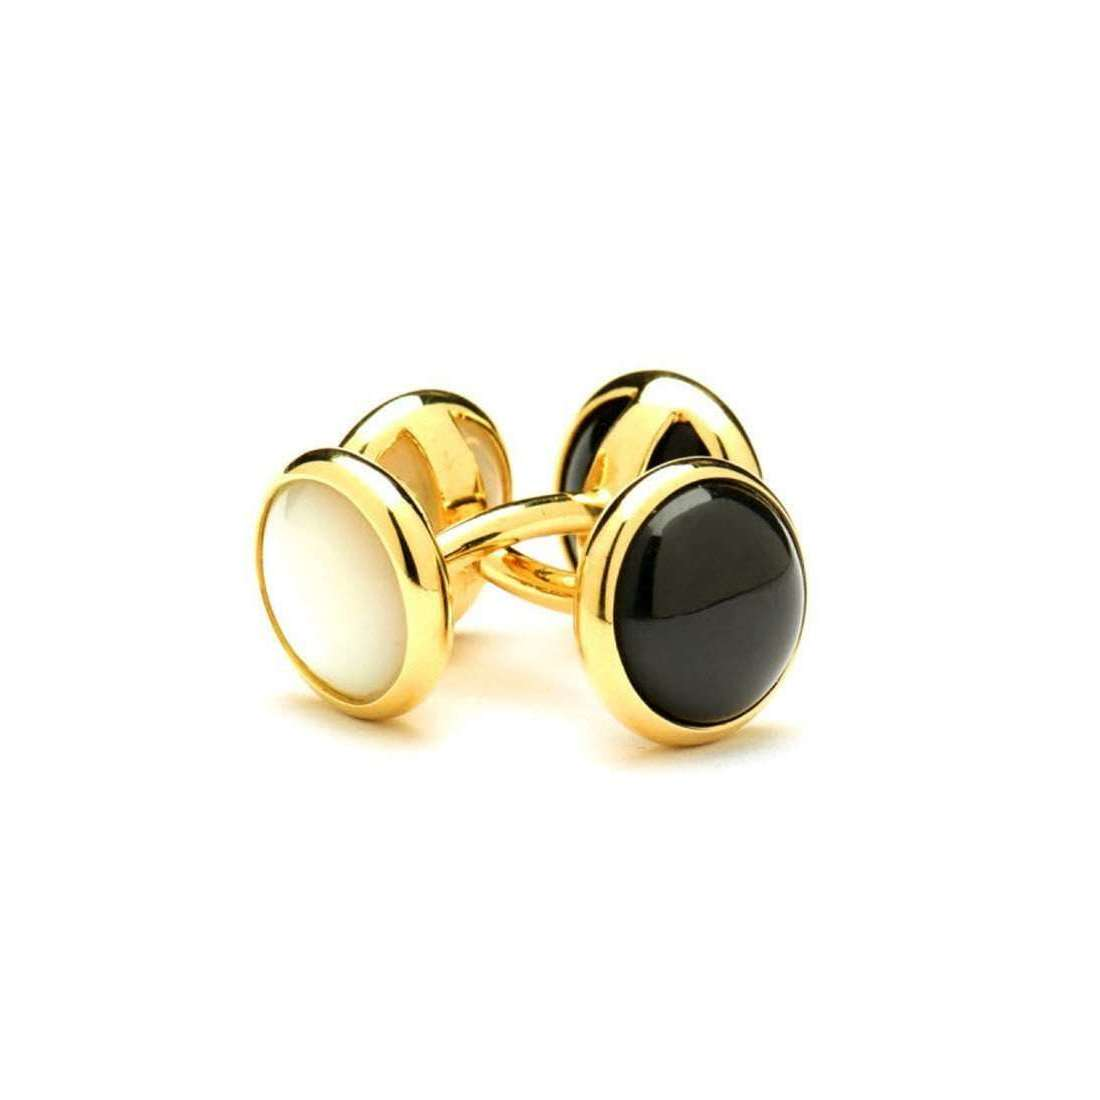 18kt Cufflinks With Mother of Pearl and Black Onyx-Syna-JewelStreet EU